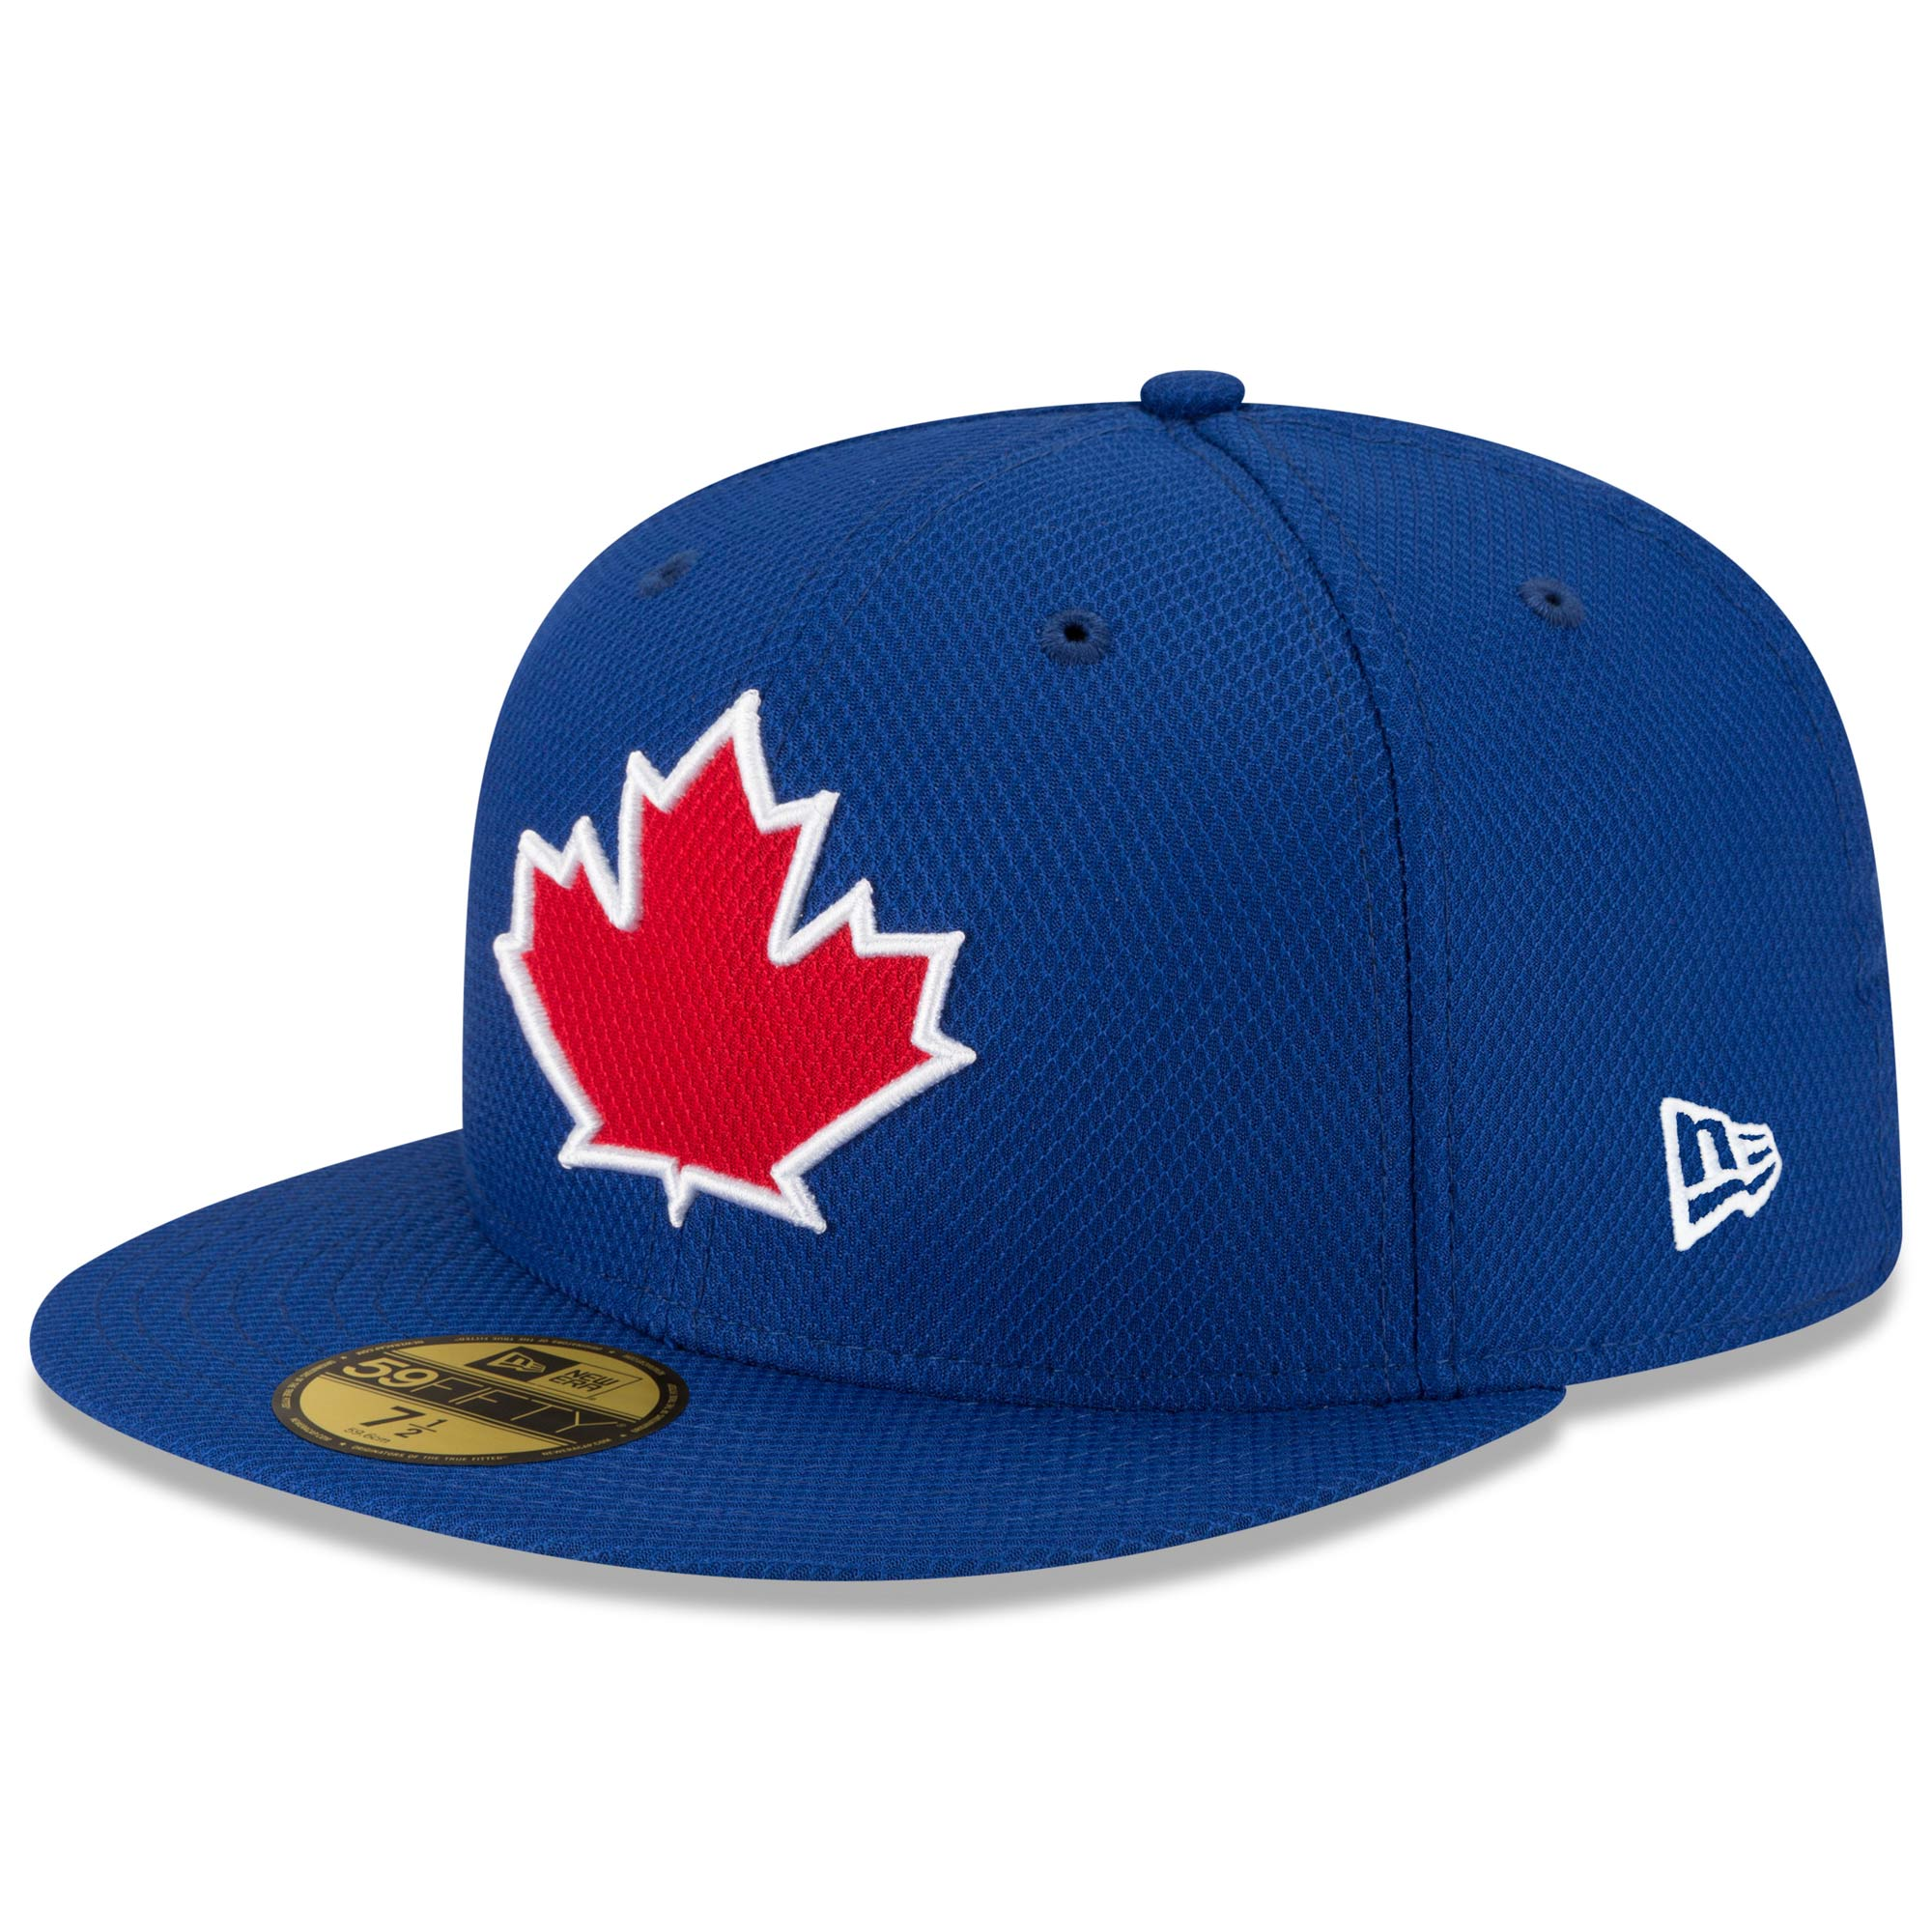 Toronto Blue Jays New Era Alternate Authentic Collection On Field 59FIFTY Fitted Hat - Royal